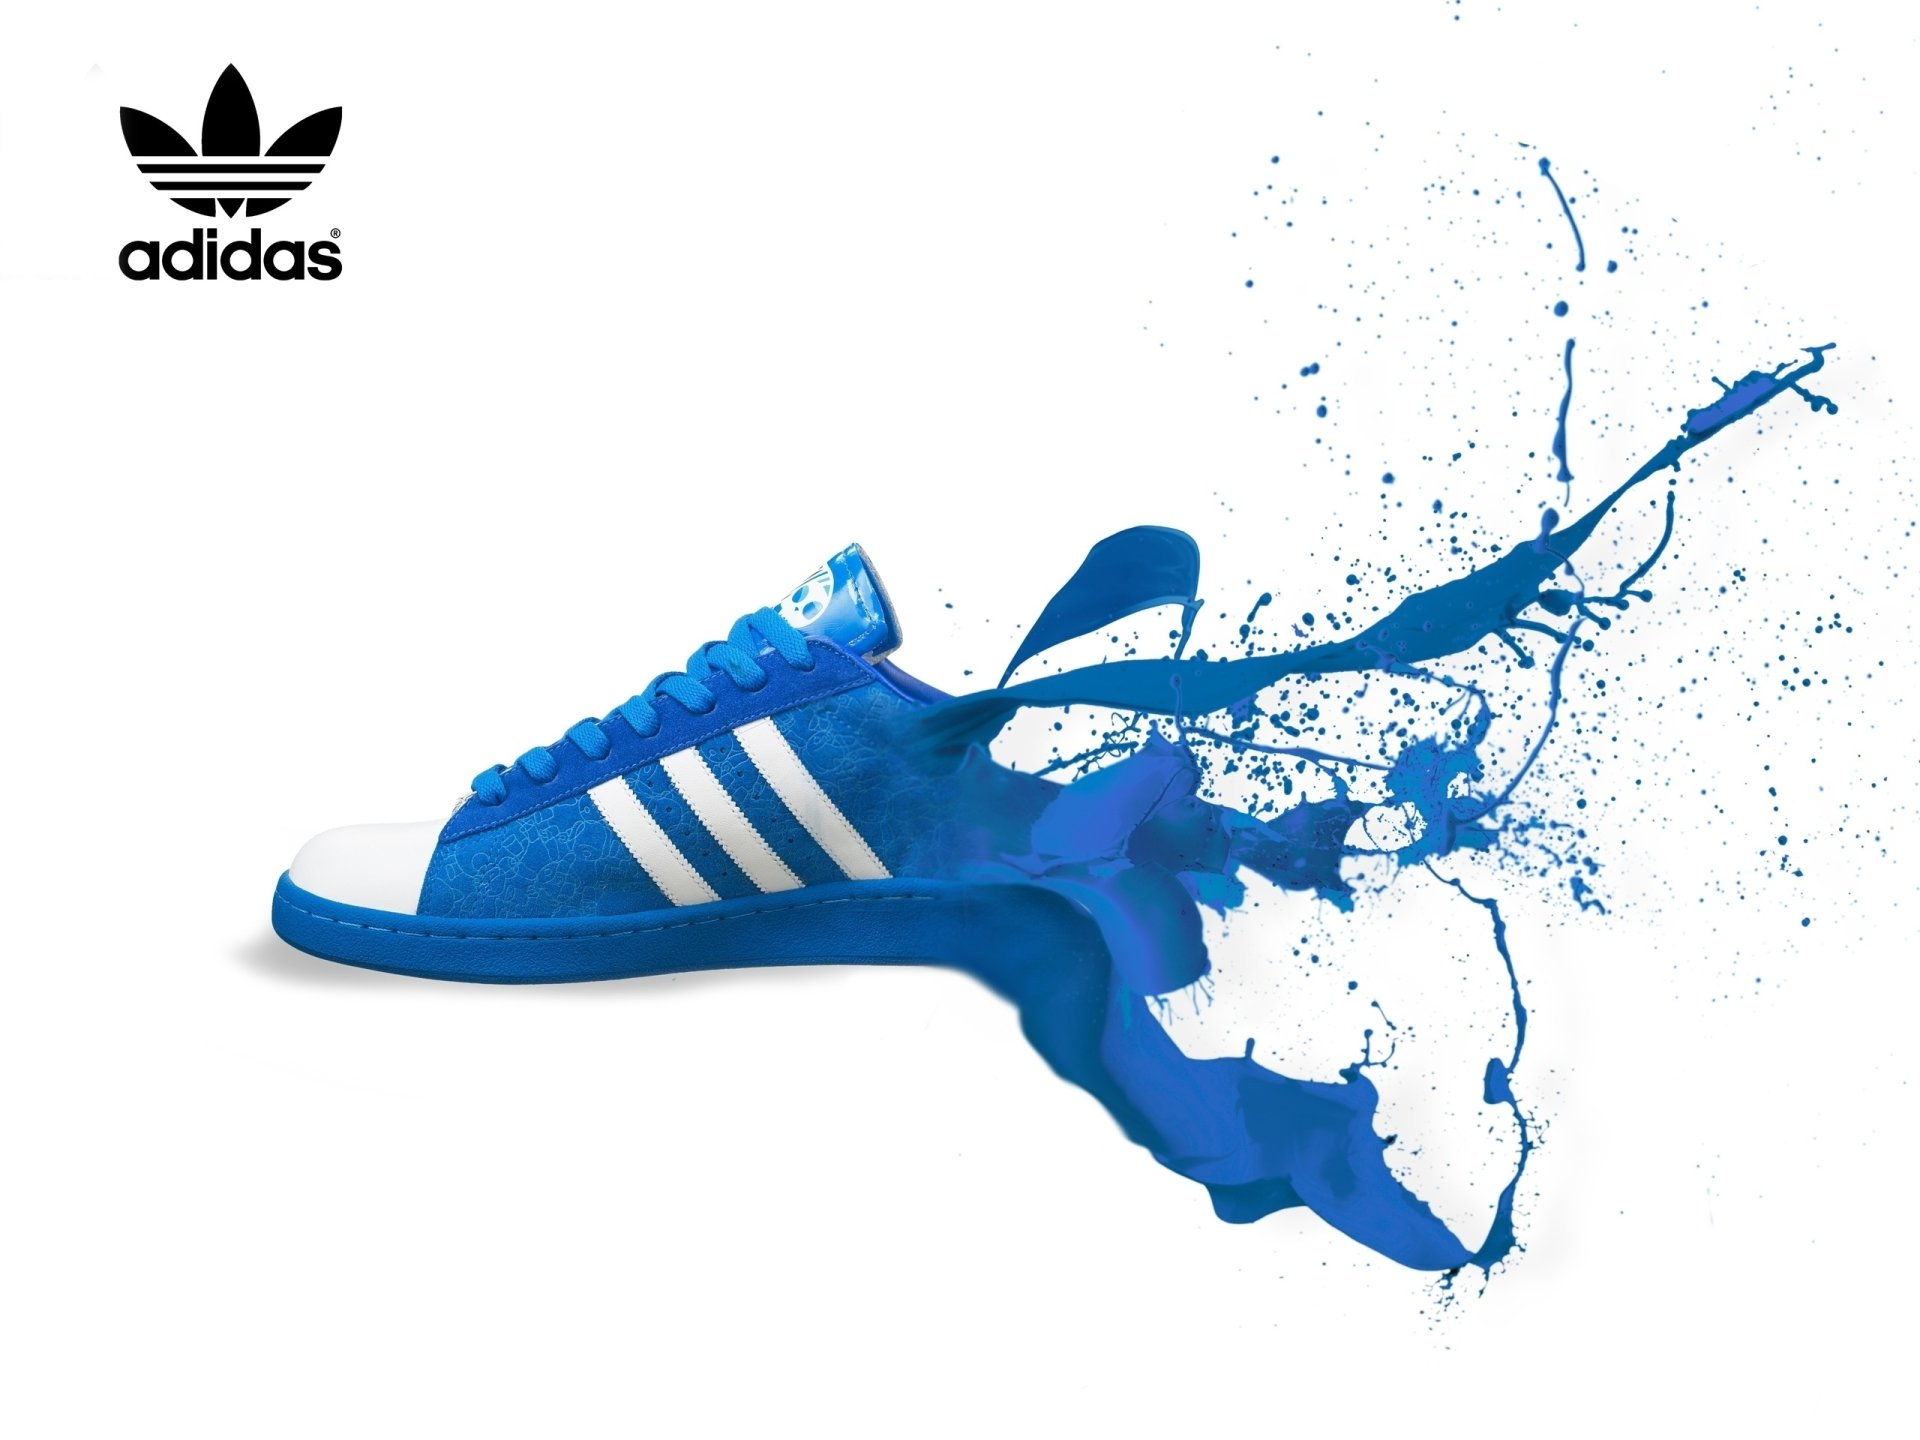 Products - Adidas  Wallpaper